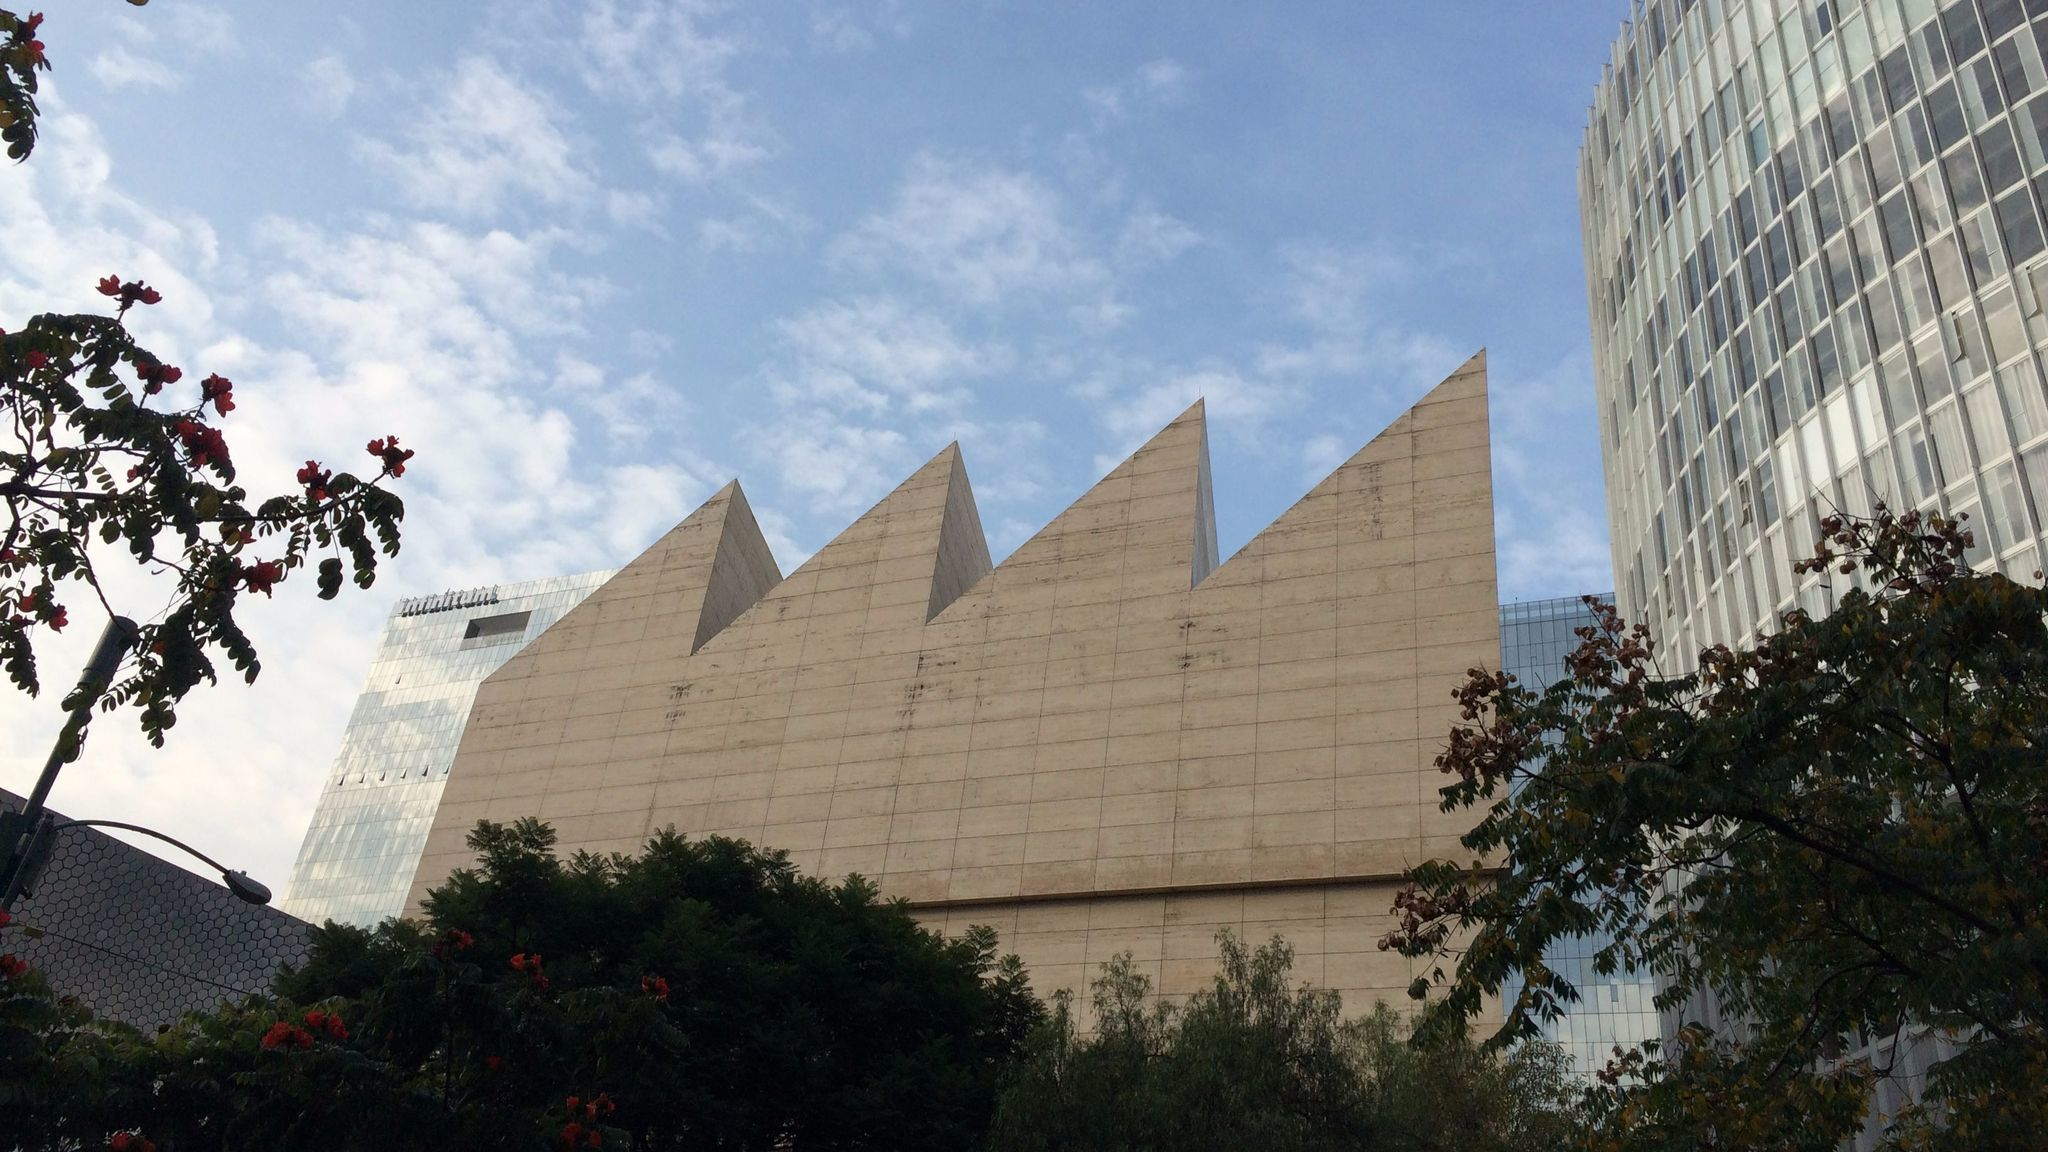 A view of the Museo Jumex, designed by British architect David Chipperfield and opened in 2013.